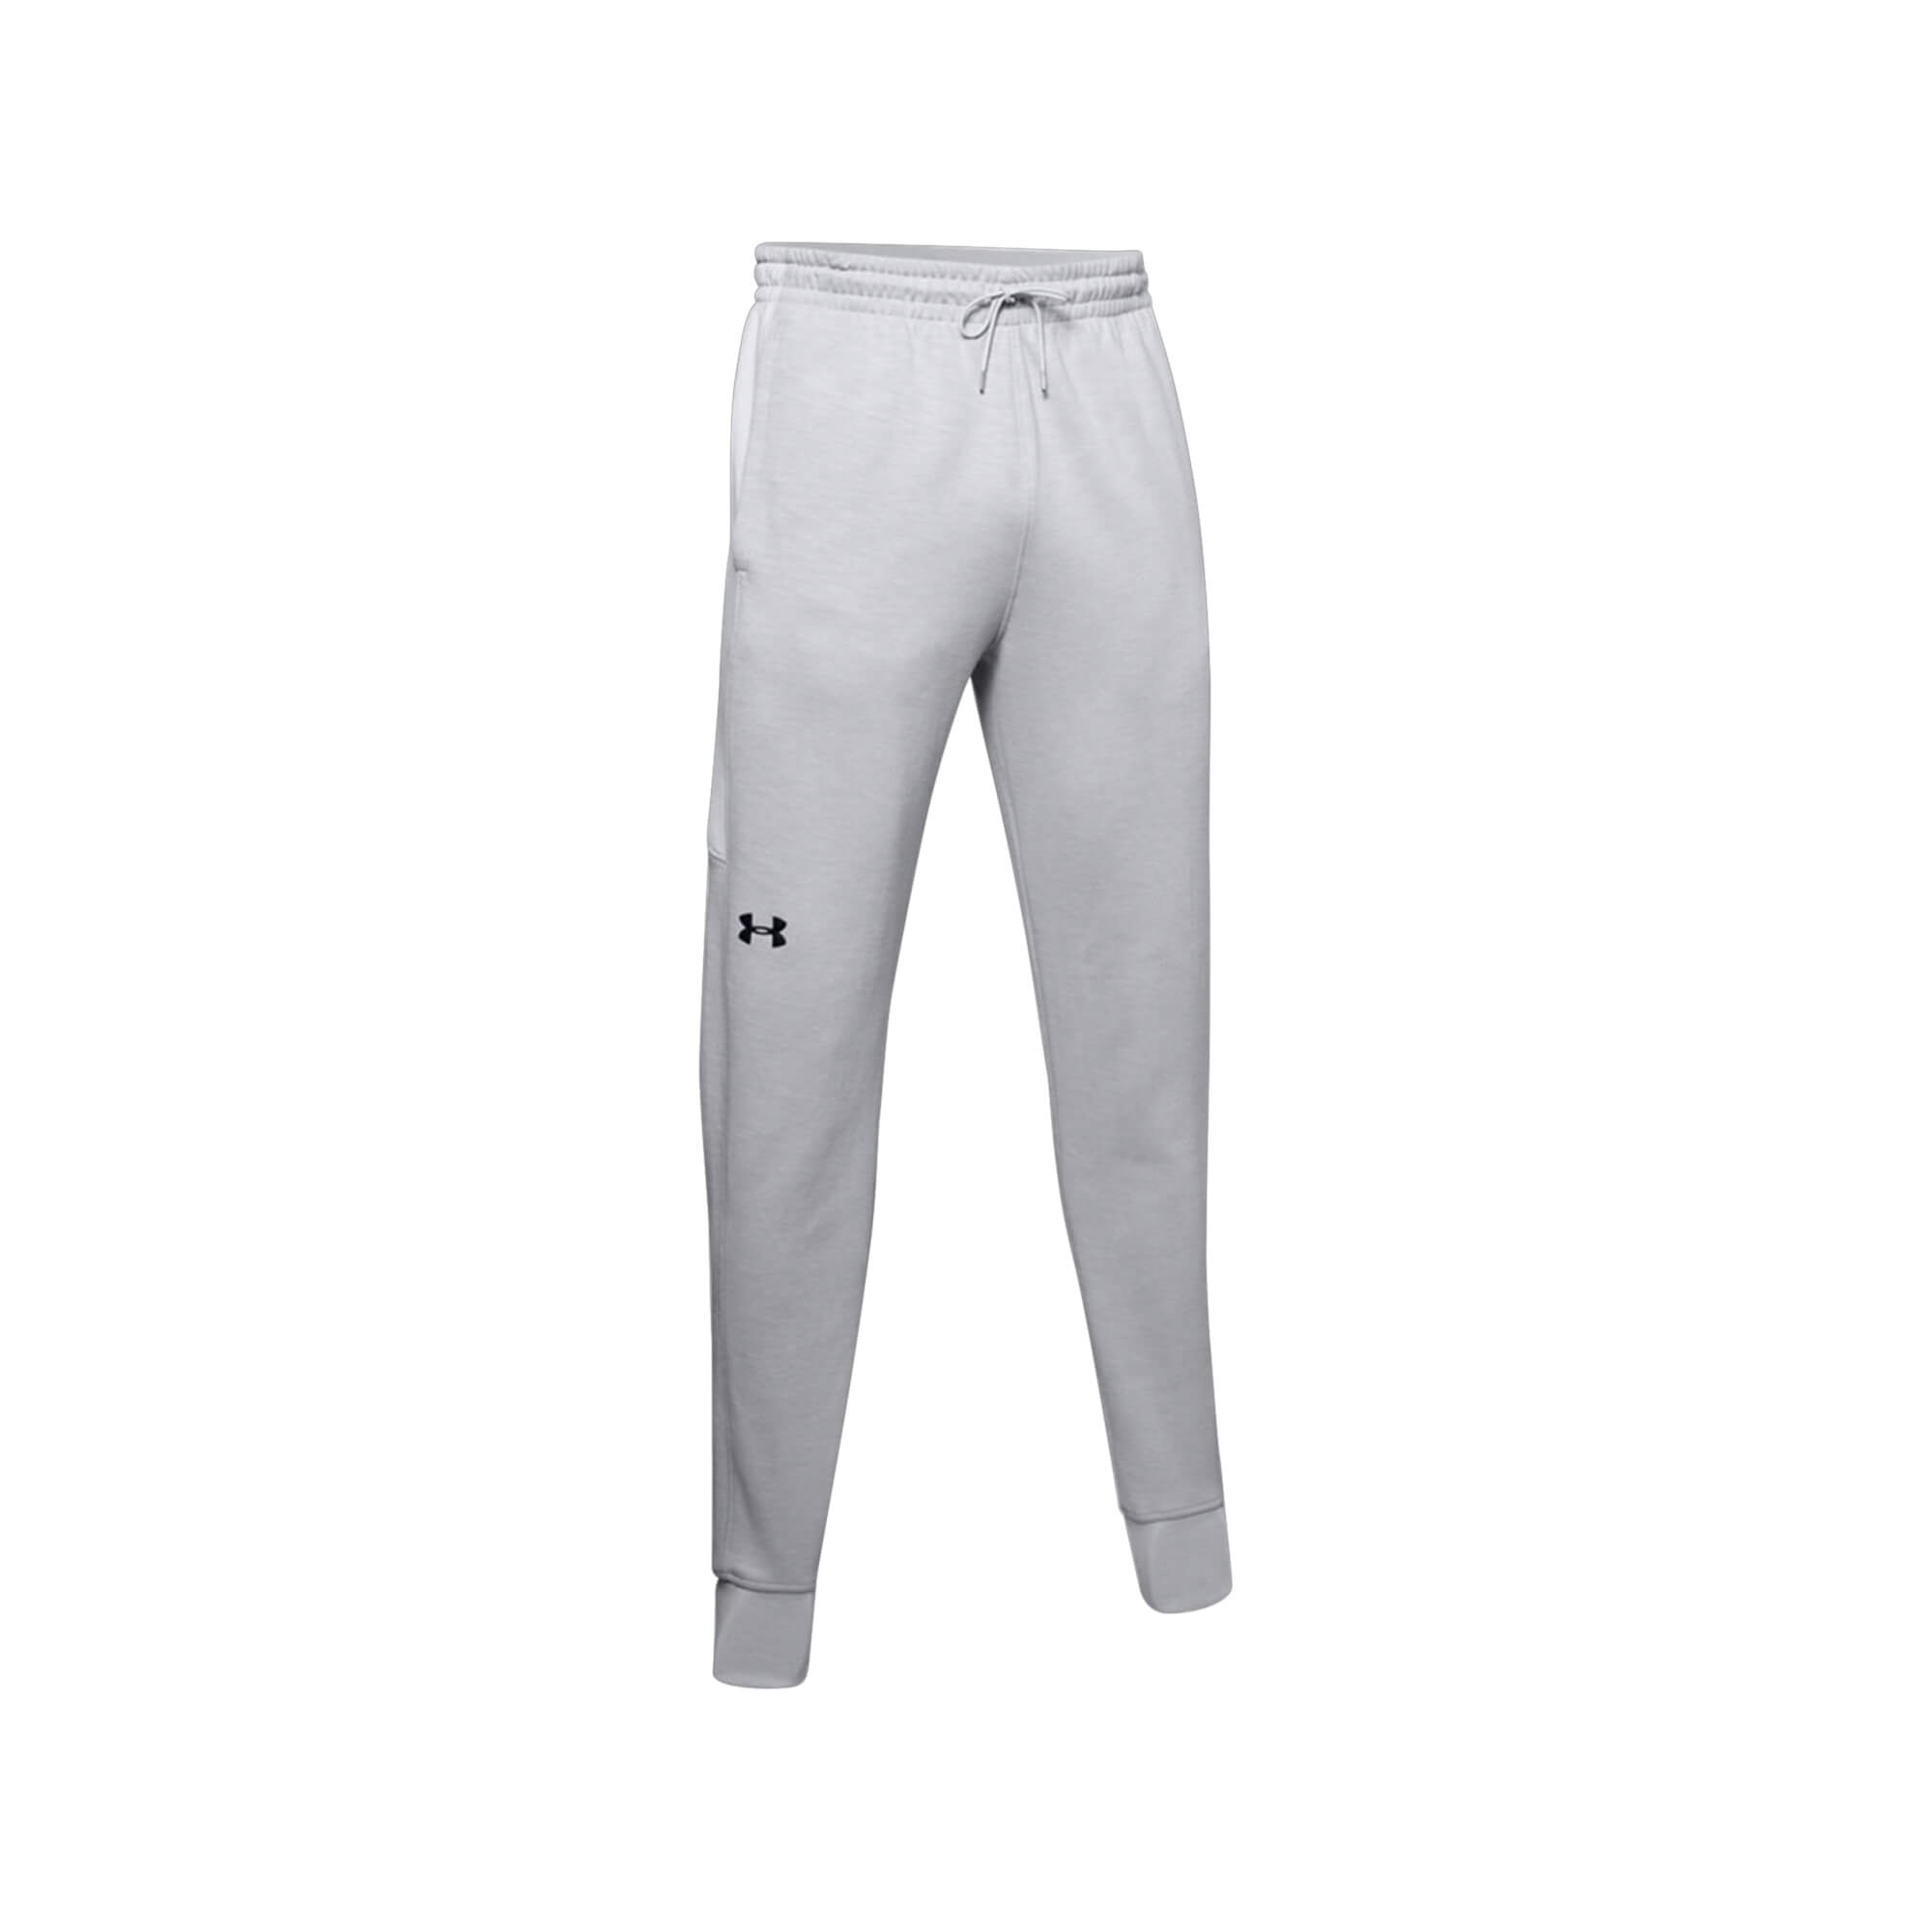 Double Knit Jogger imagine produs